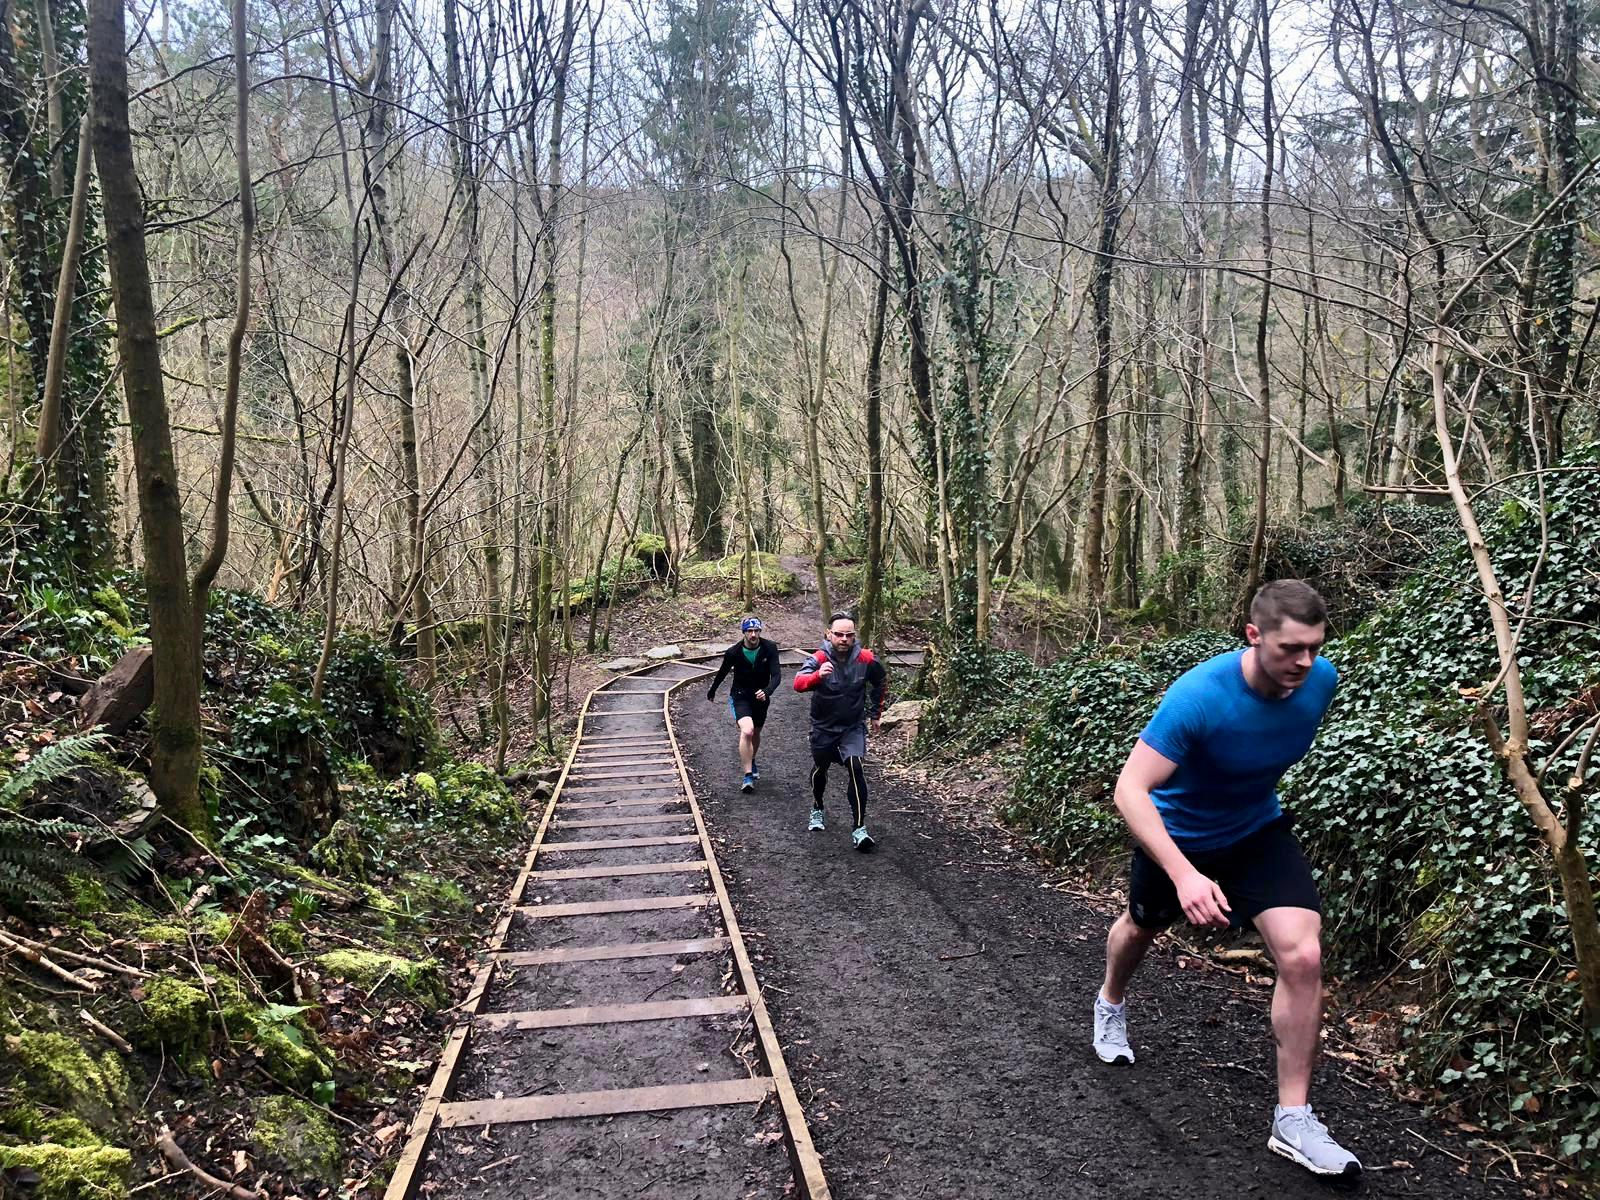 Trail Blazer or Trial Blazer? - Join us on our free trail running/ walking groups and enjoy some of Scotland's great outdoors!